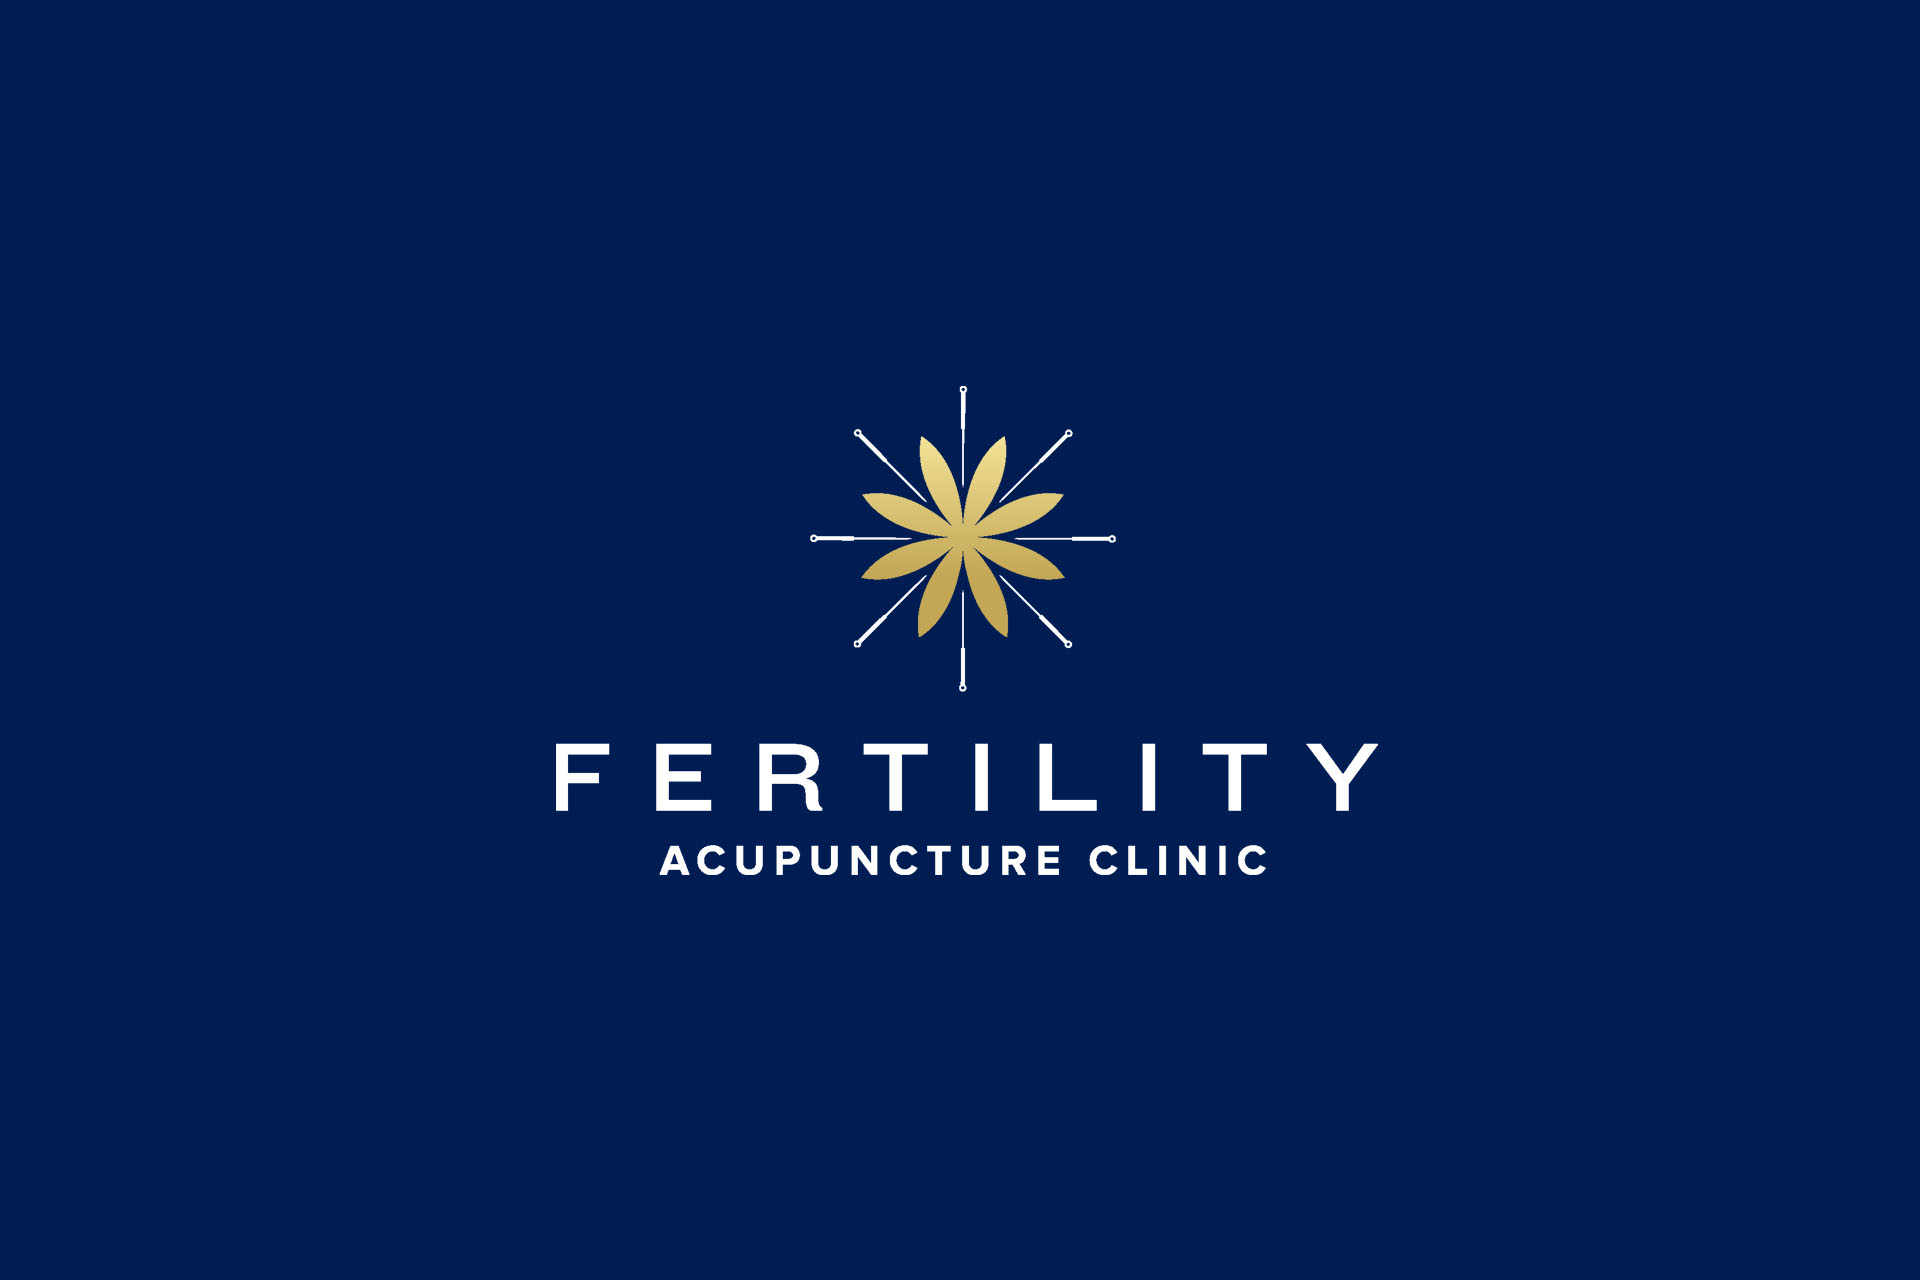 Fertility Acupuncture Clinic brand identity by Leysa Flores